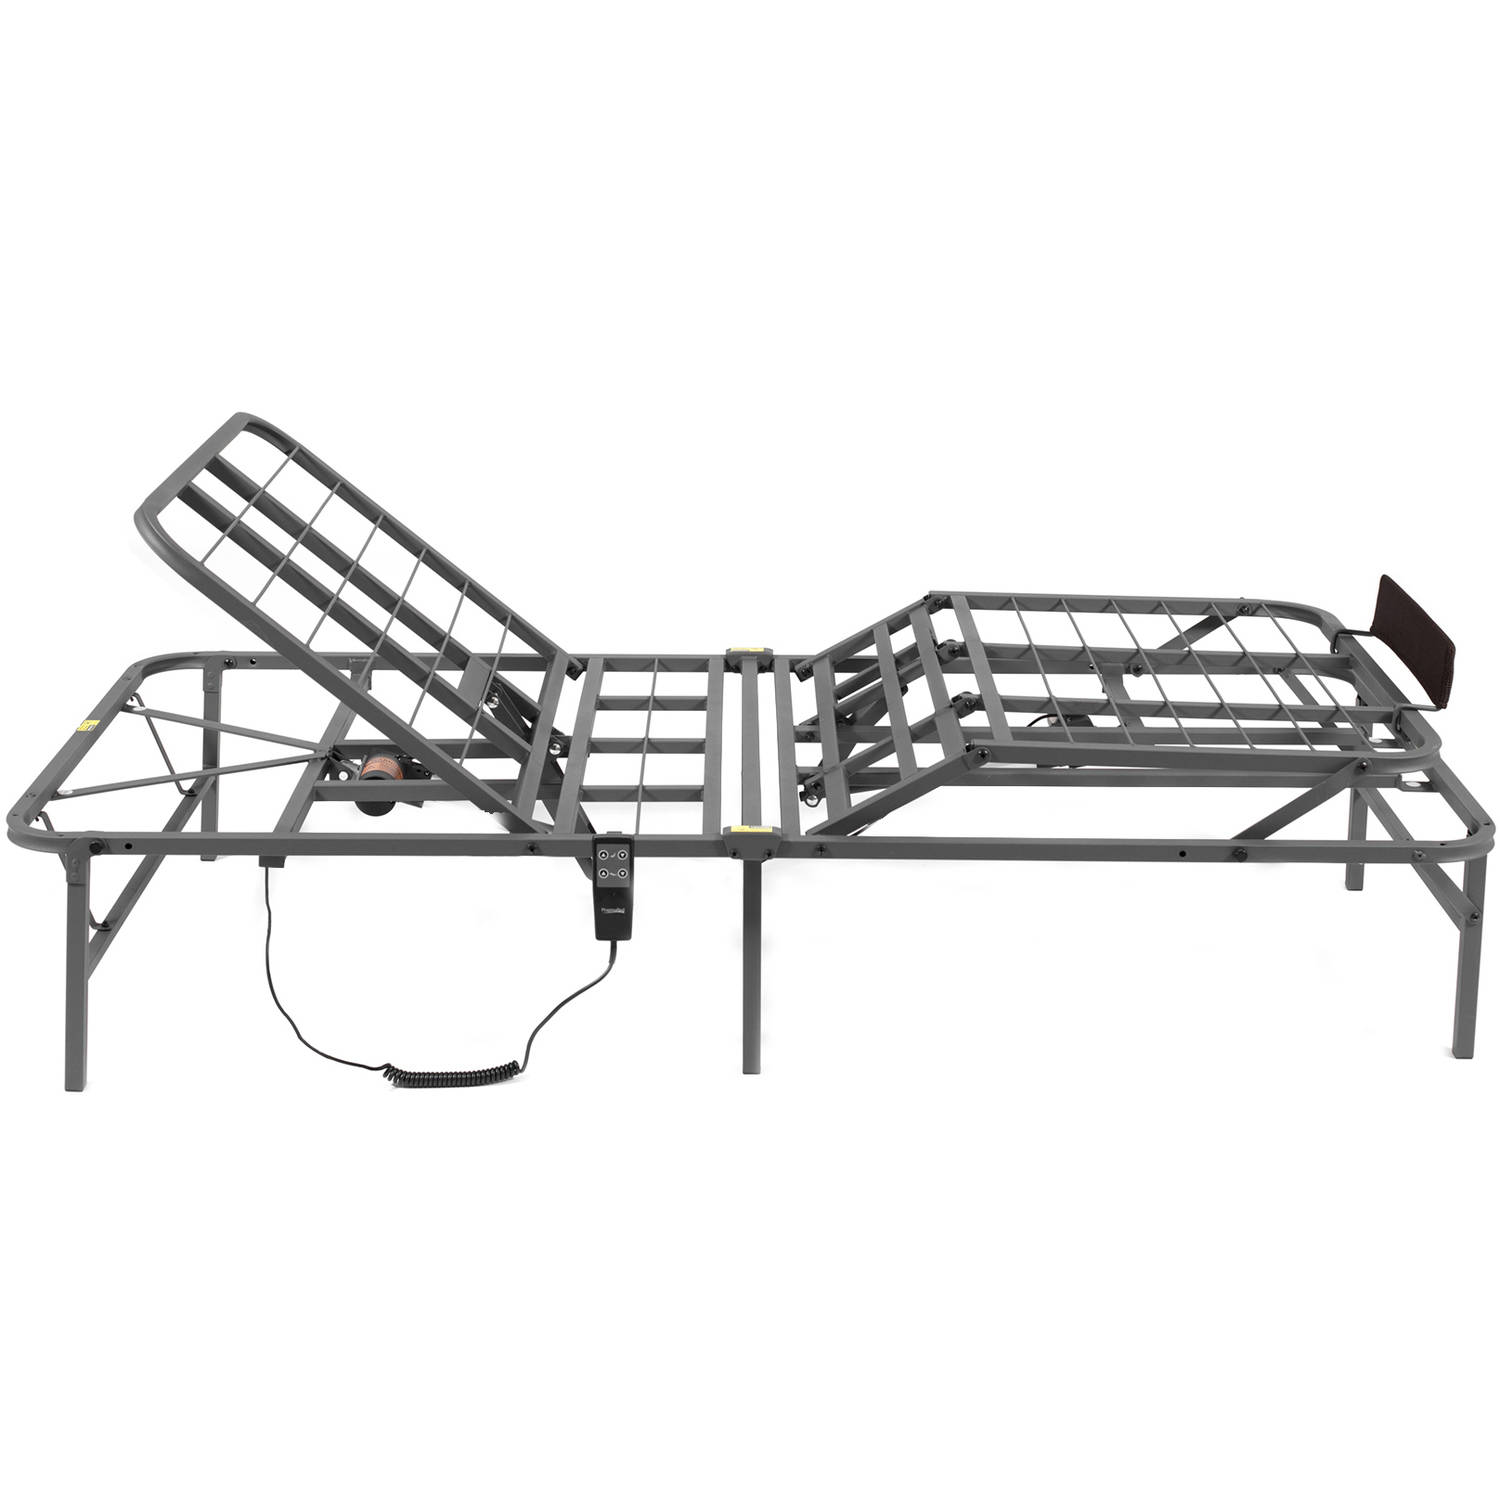 Pragmatic 14 High Profile Dual Adjustable Steel Bed Frame